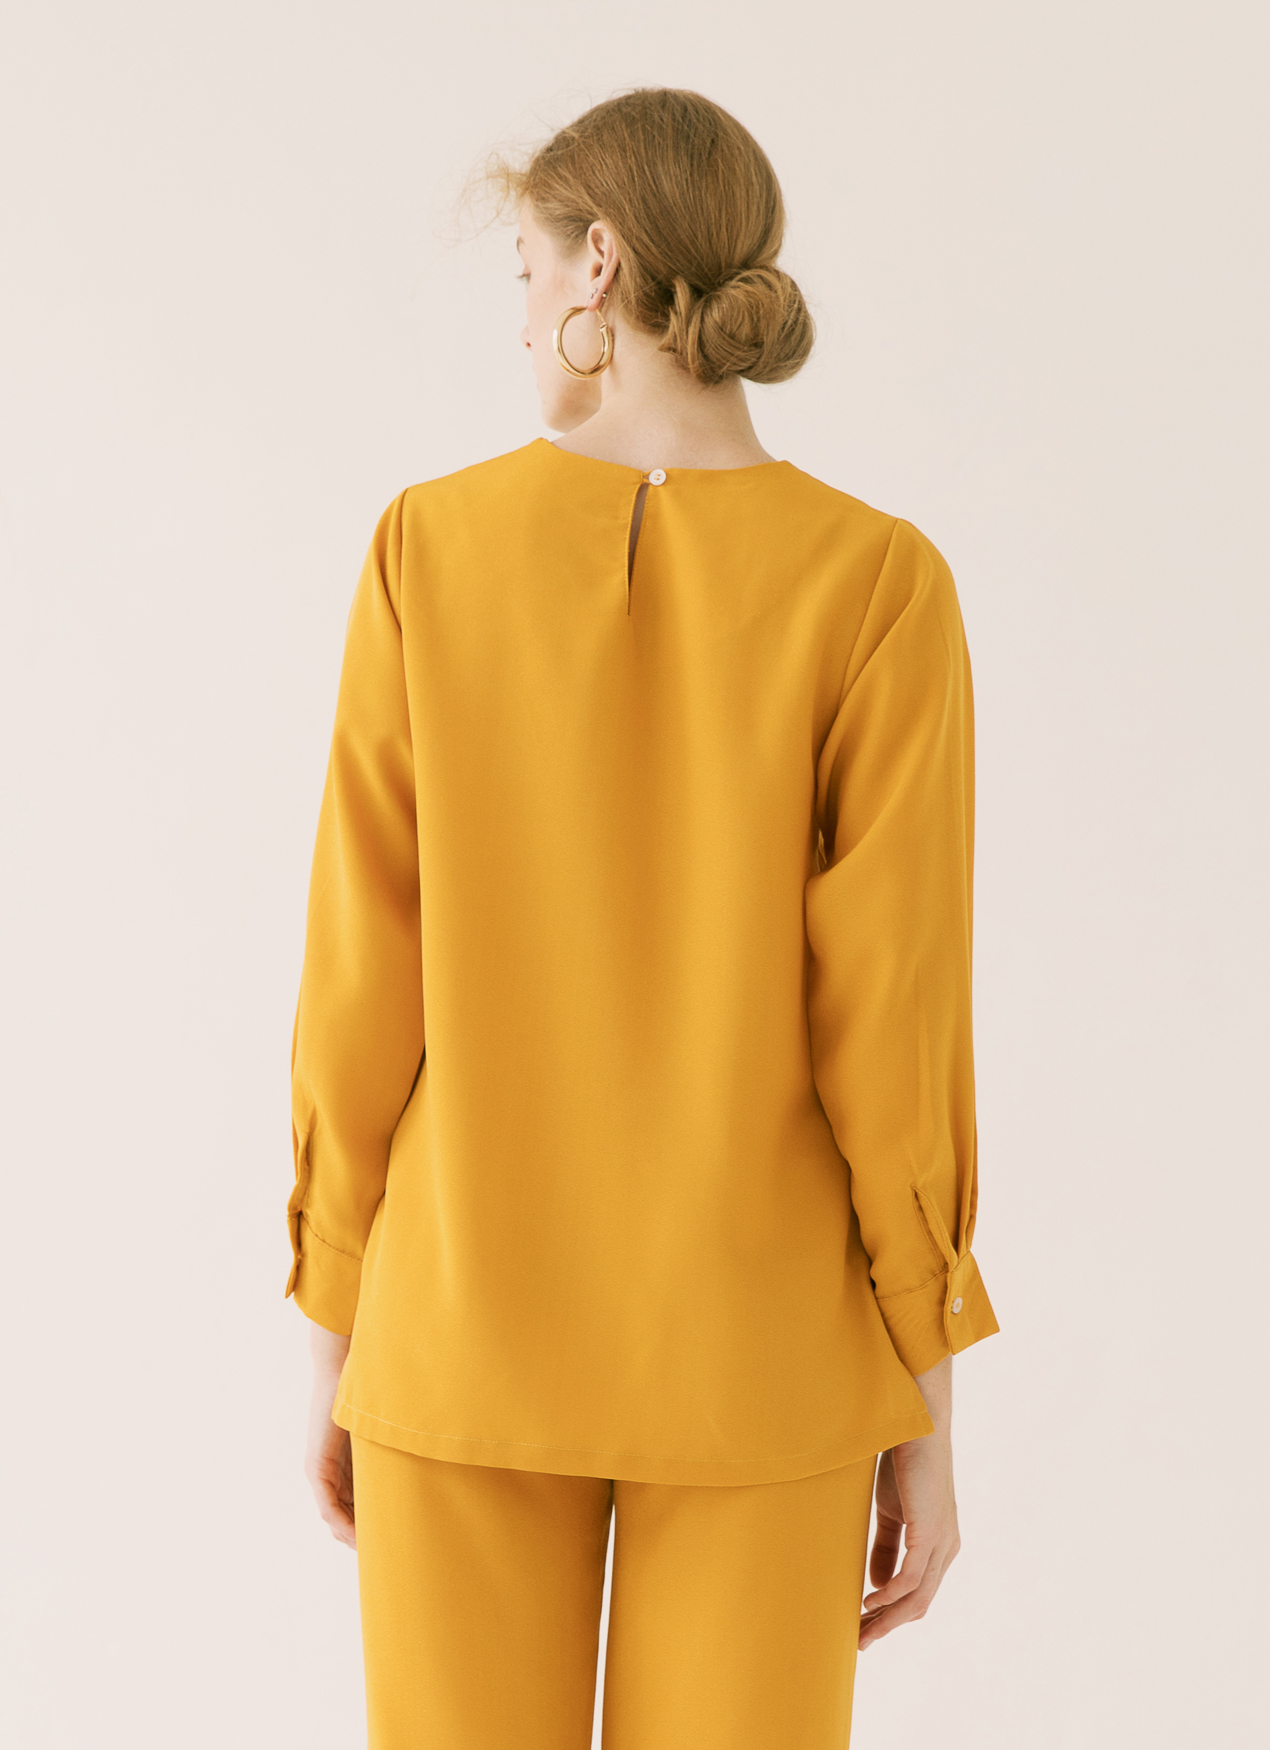 ATS THE LABEL Goldie Curry Top - Yellow